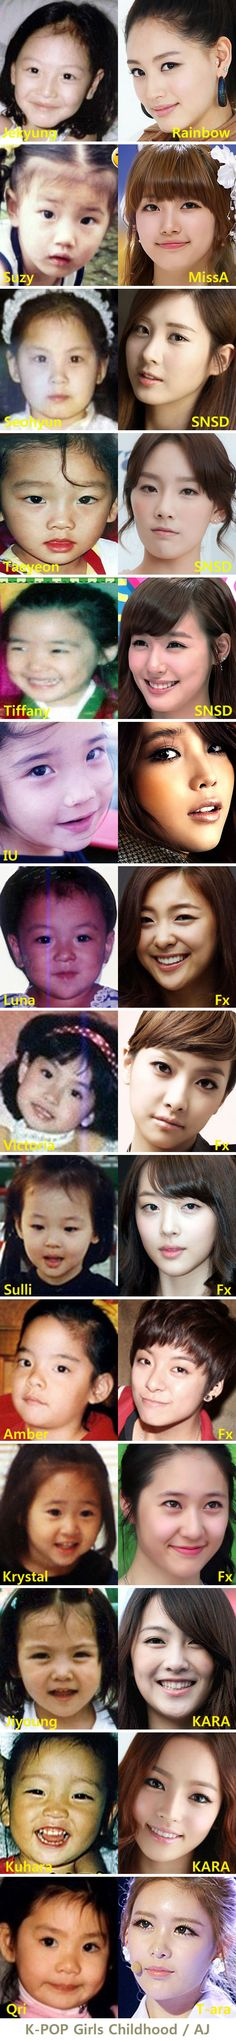 K-POP Girls Childhood still hope for beauty for me!! :U